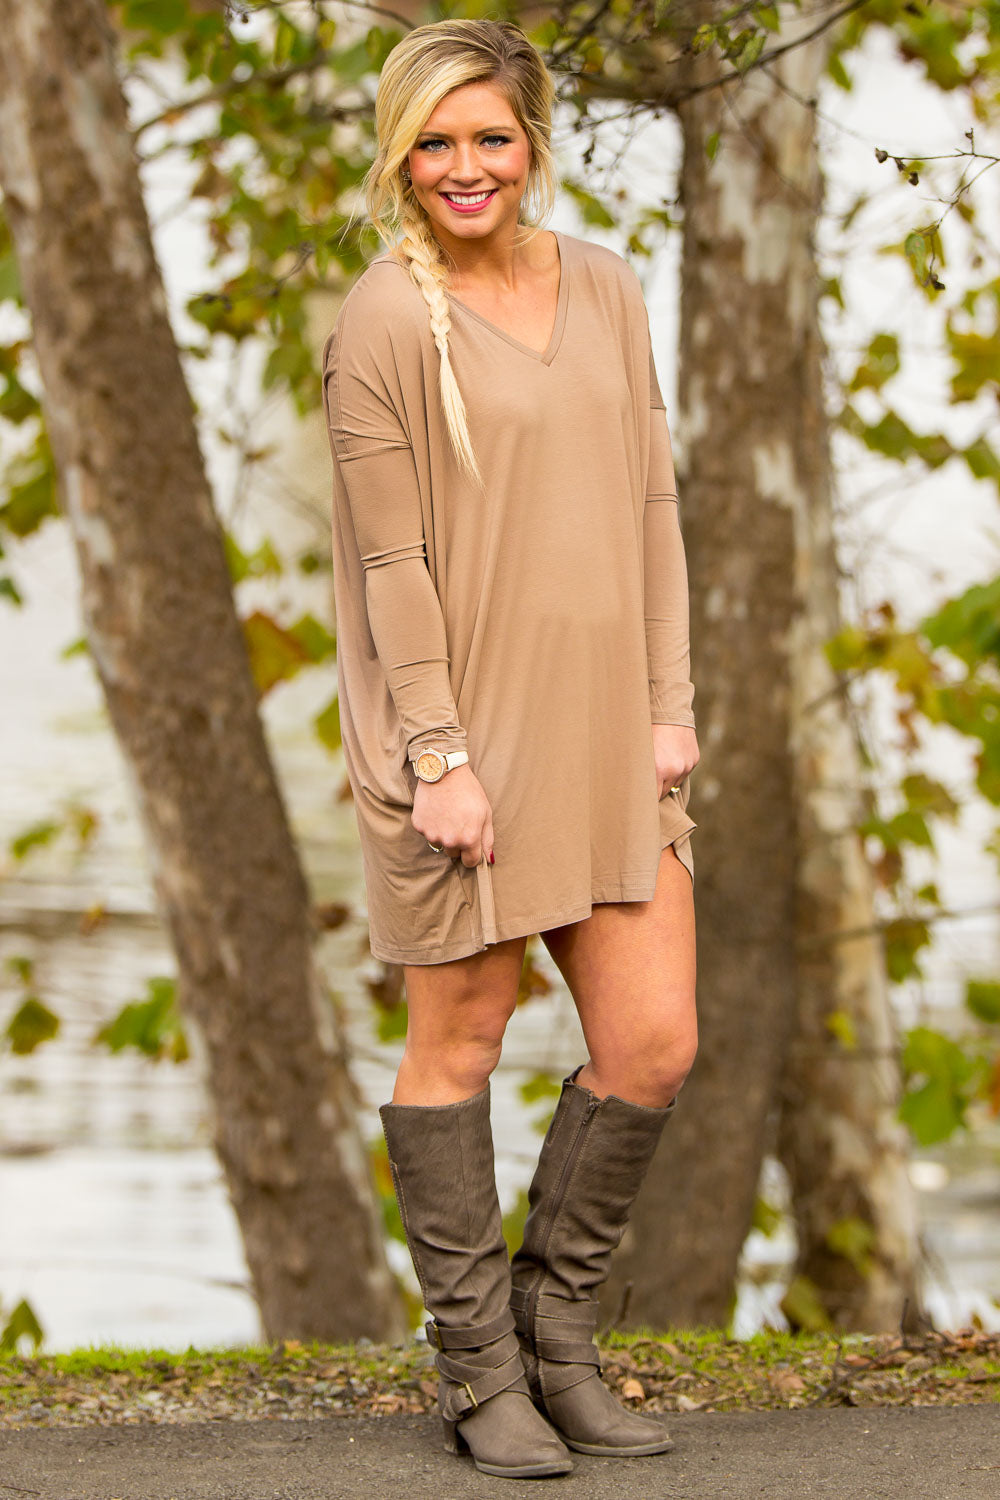 Long Sleeve V-Neck Piko Tunic - Mocha - Piko Clothing